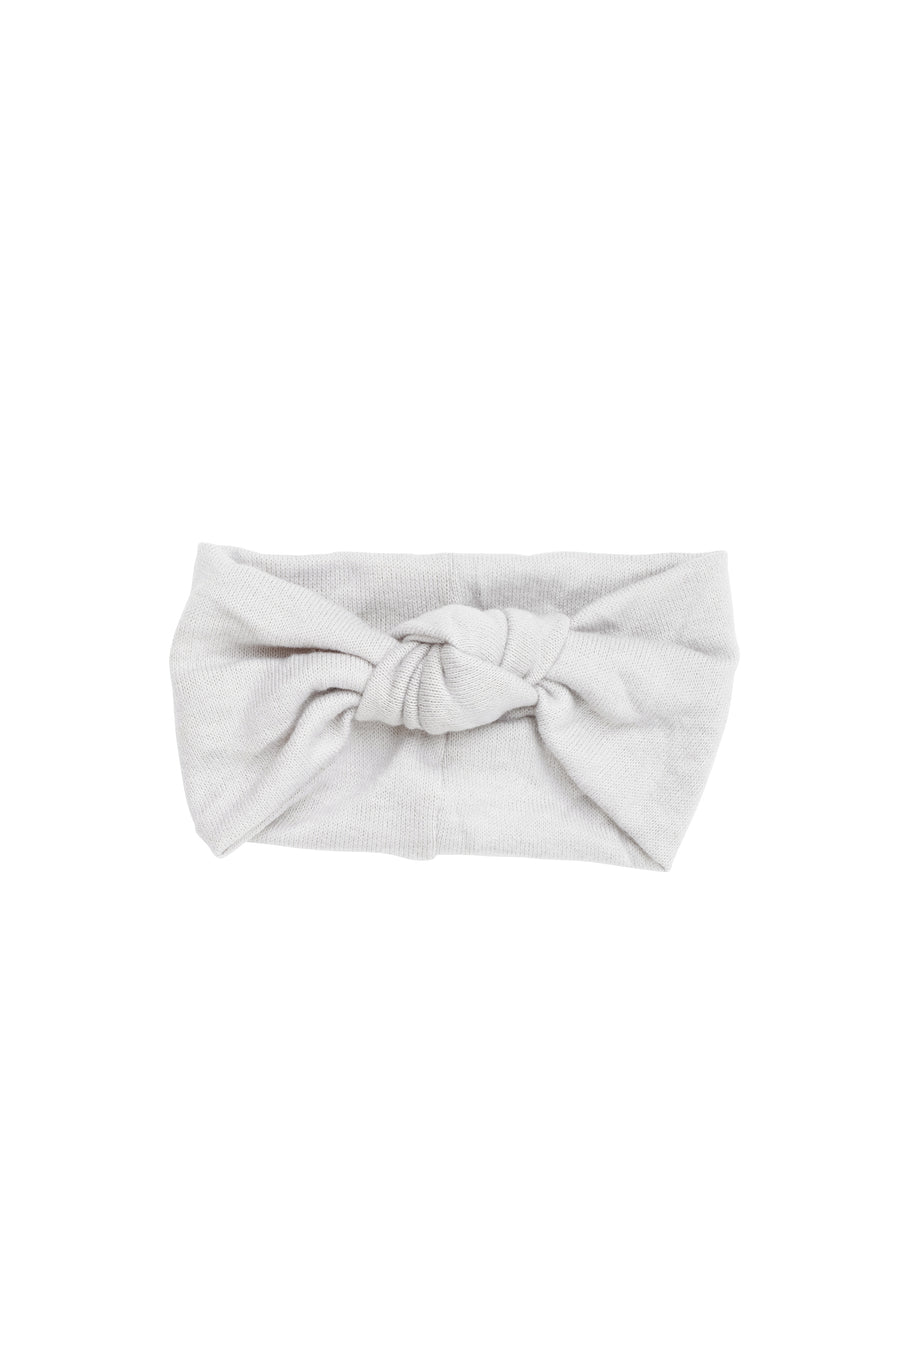 Knot Wrap - Winter White Wool - PROJECT 6, modest fashion